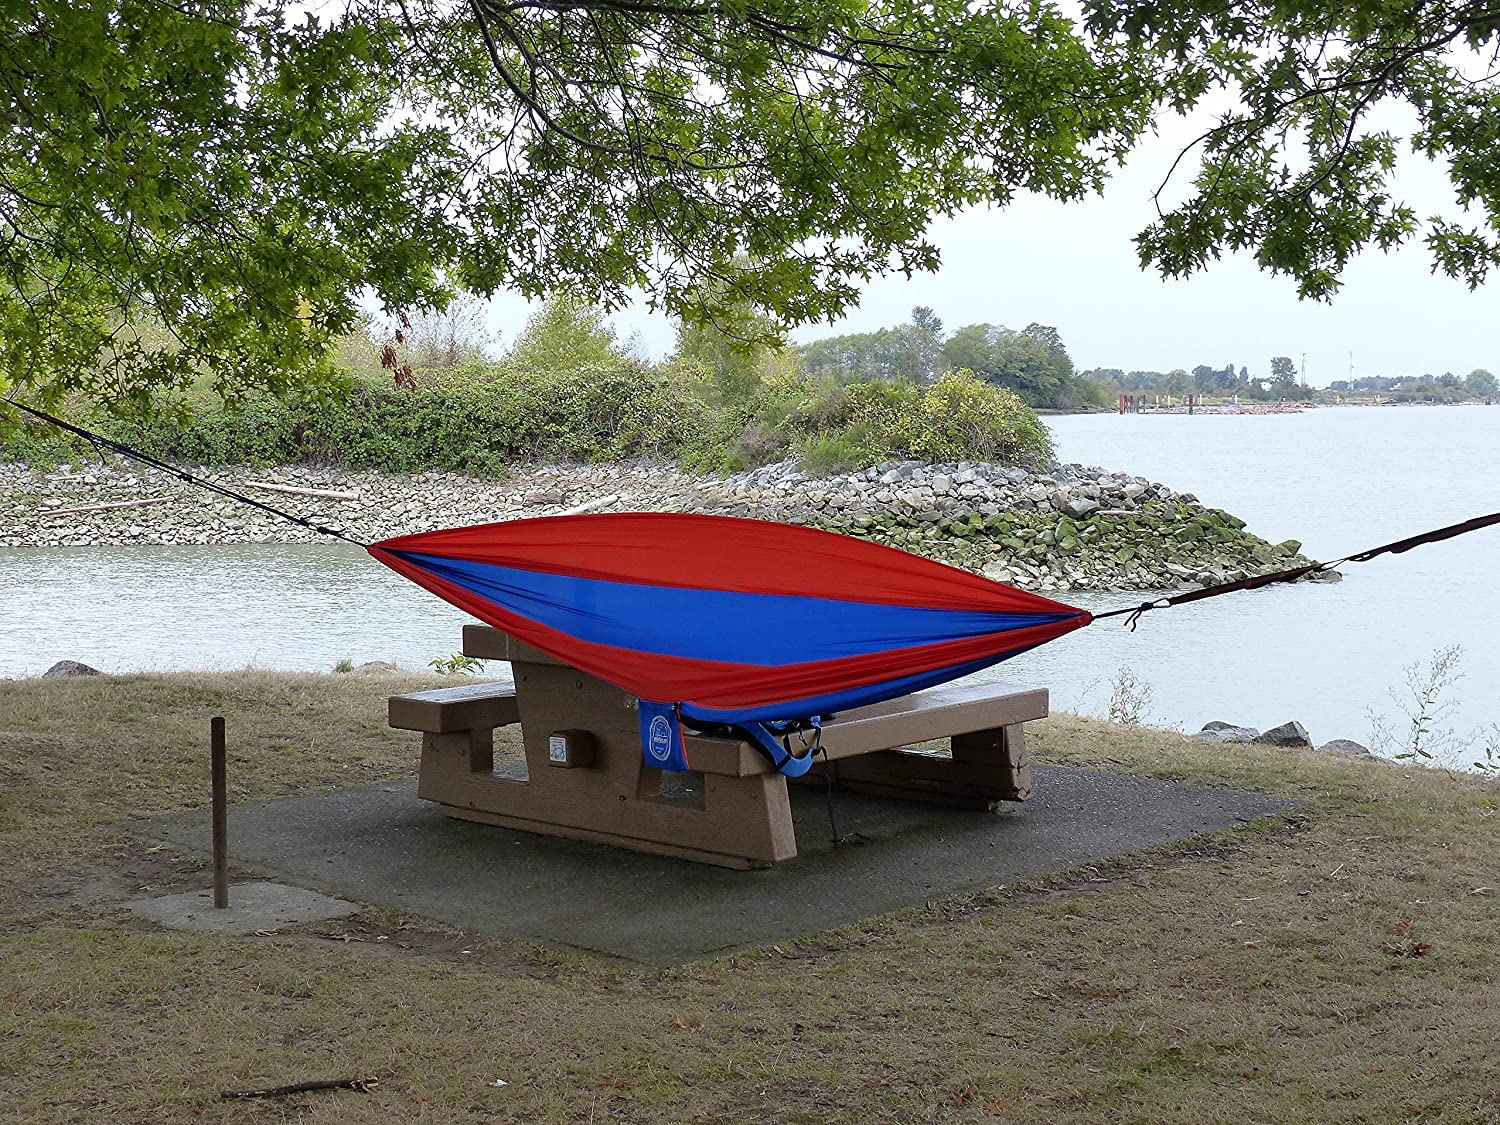 and Bed Durable nest with the eagles or play with bear butt cubs Durable Parachute Nylon Couples Camping Hammock Swing Elefun Double Hammock with Tree Safe Straps Dual Hammock Chair enough merit badges to gonext 600 Pound Capacity Hammock